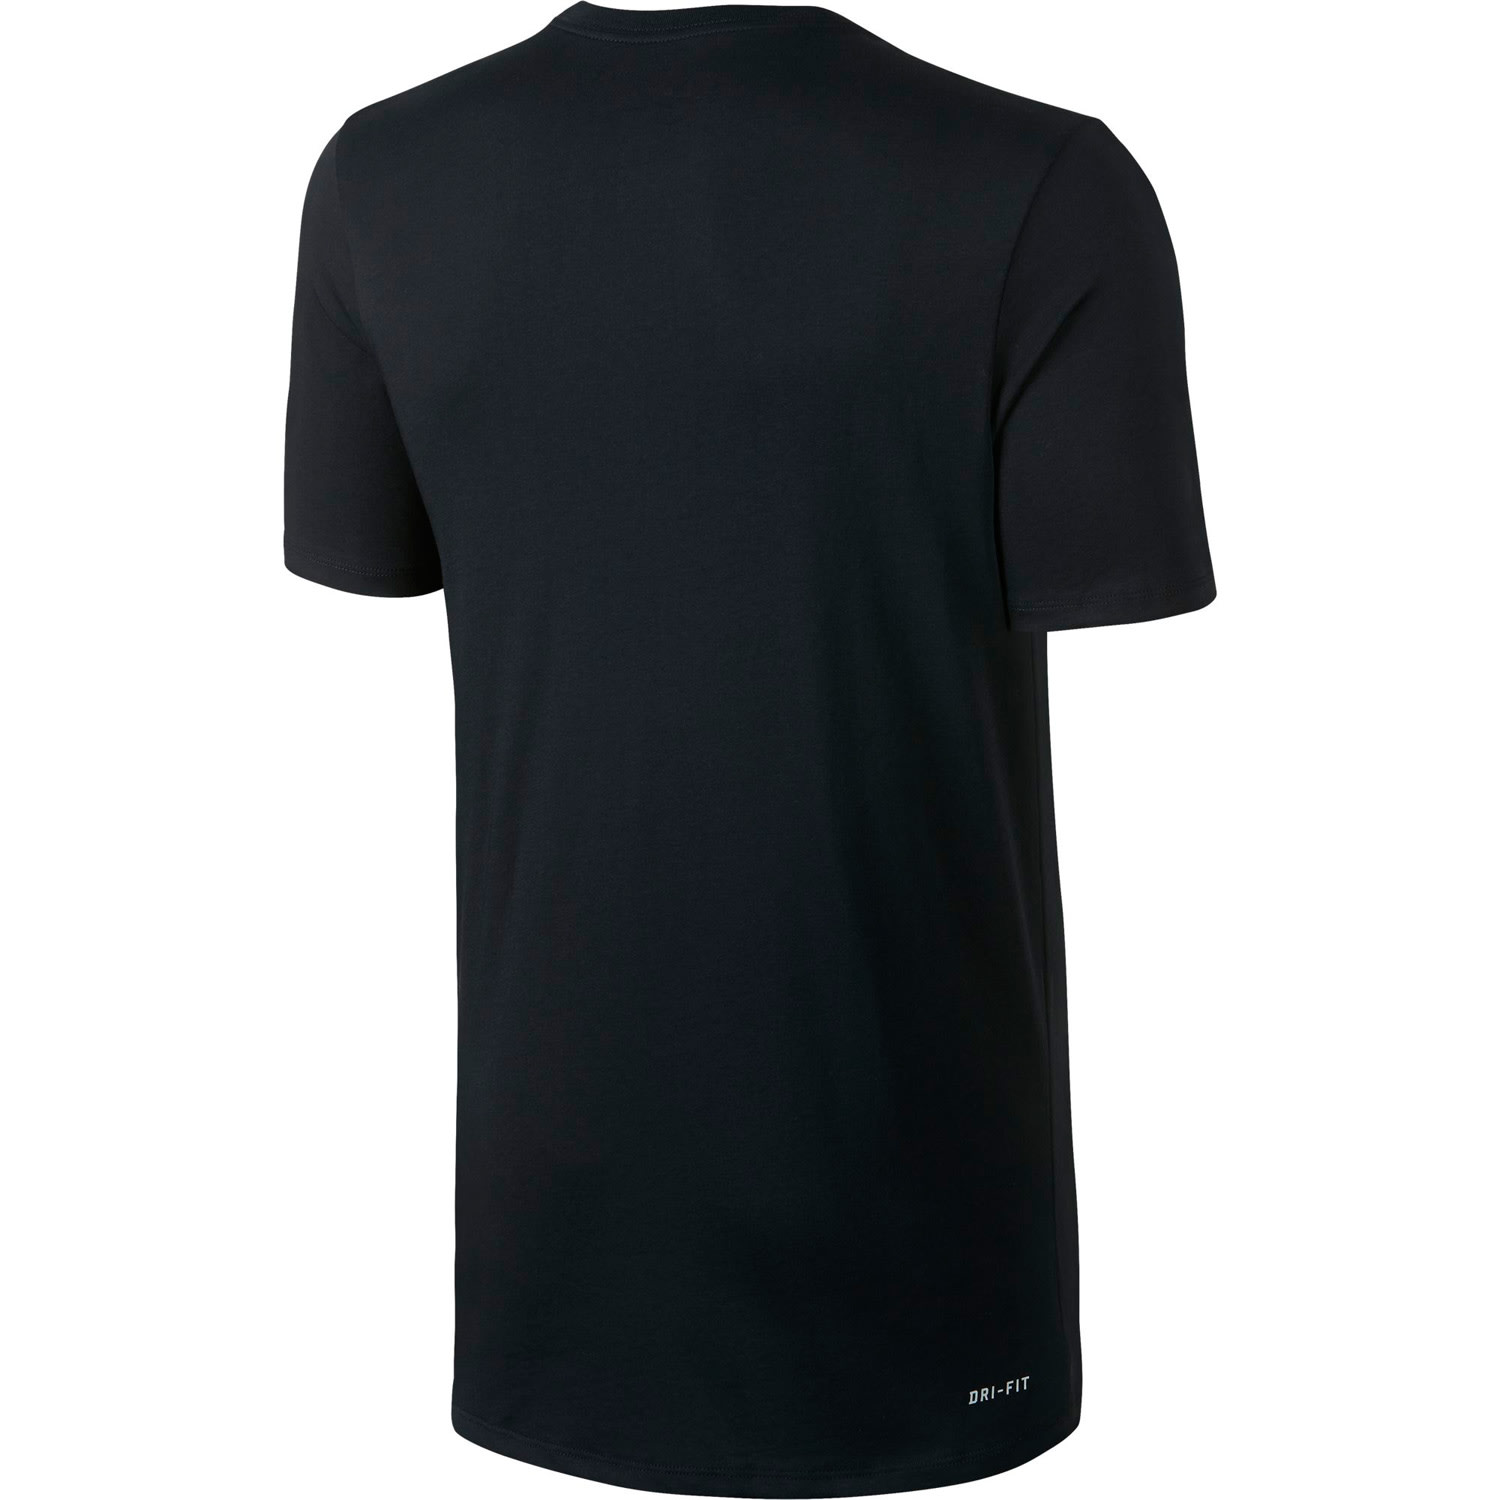 On sale nike sb dri fit solid pocket t shirt up to 45 off for Dri fit shirts on sale